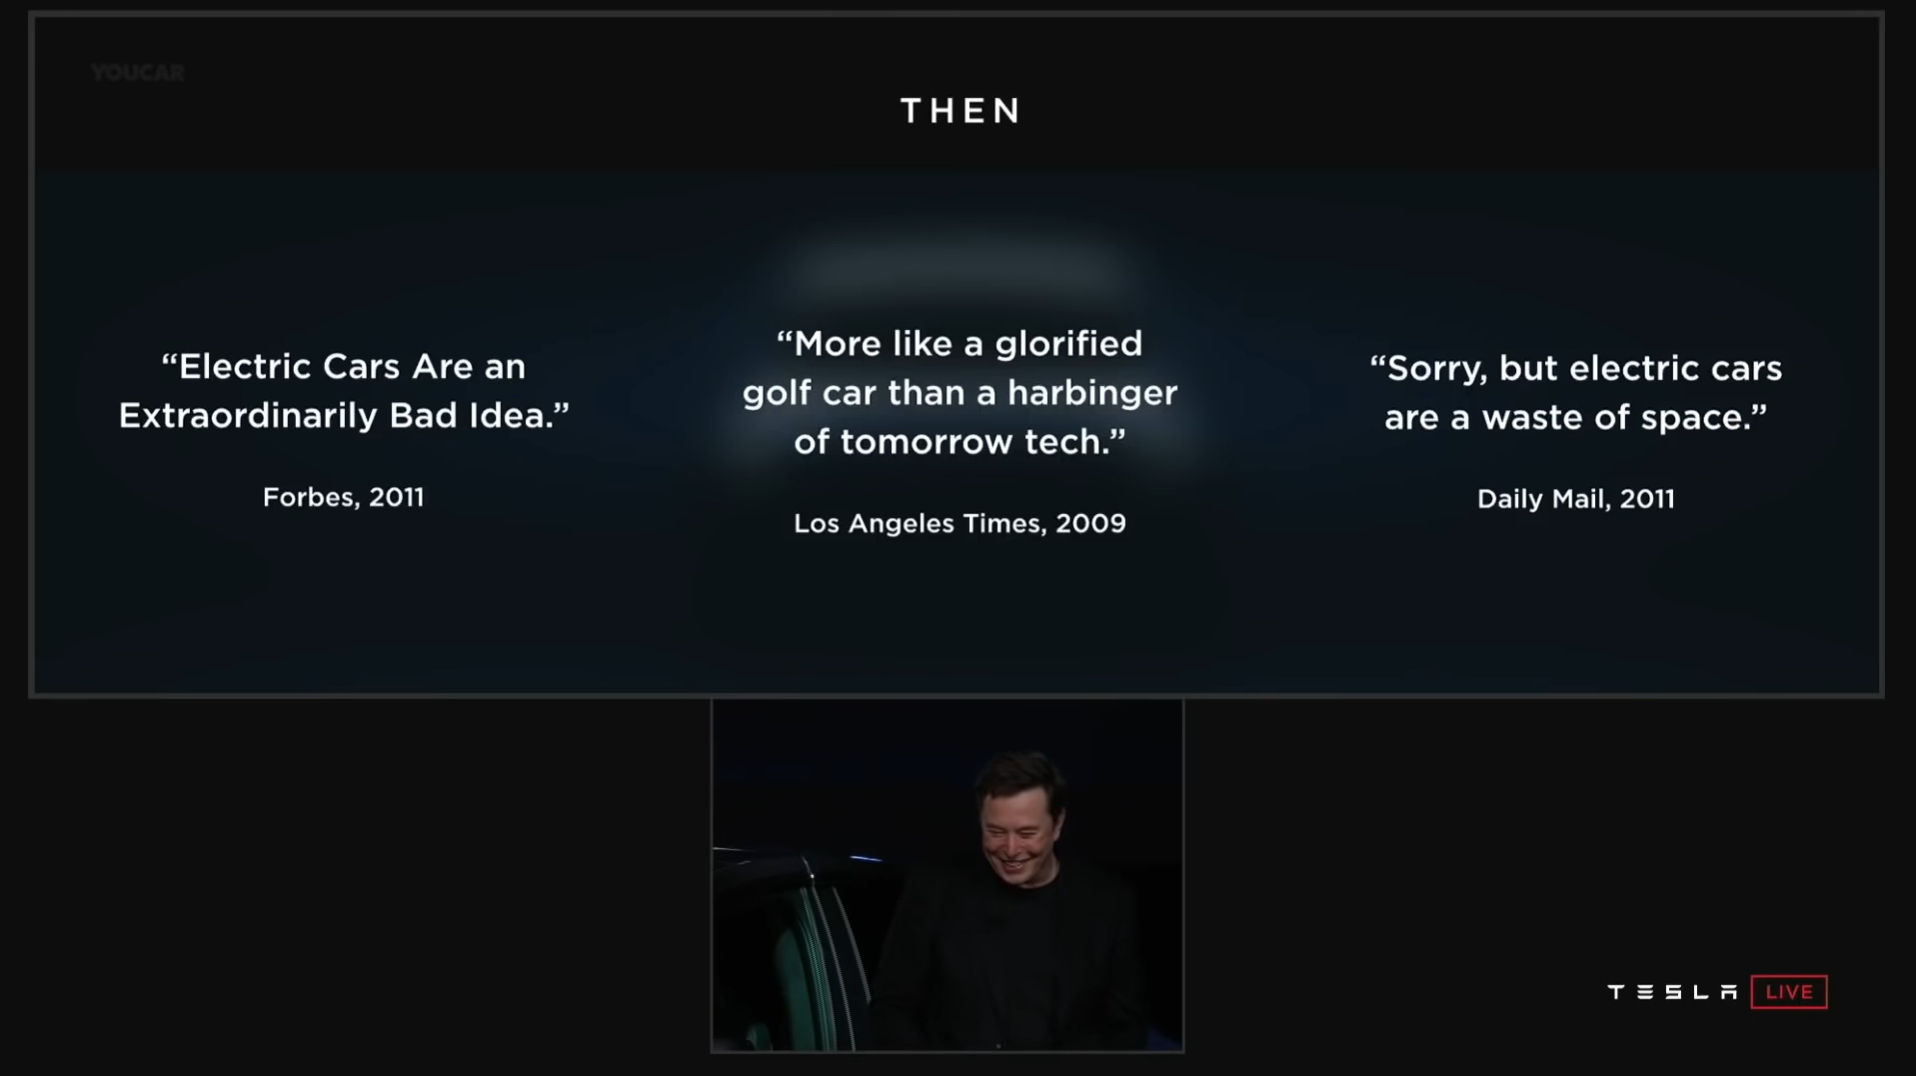 Tesla Elon Musk Now Then Quotes 2011 Model Y Presentation